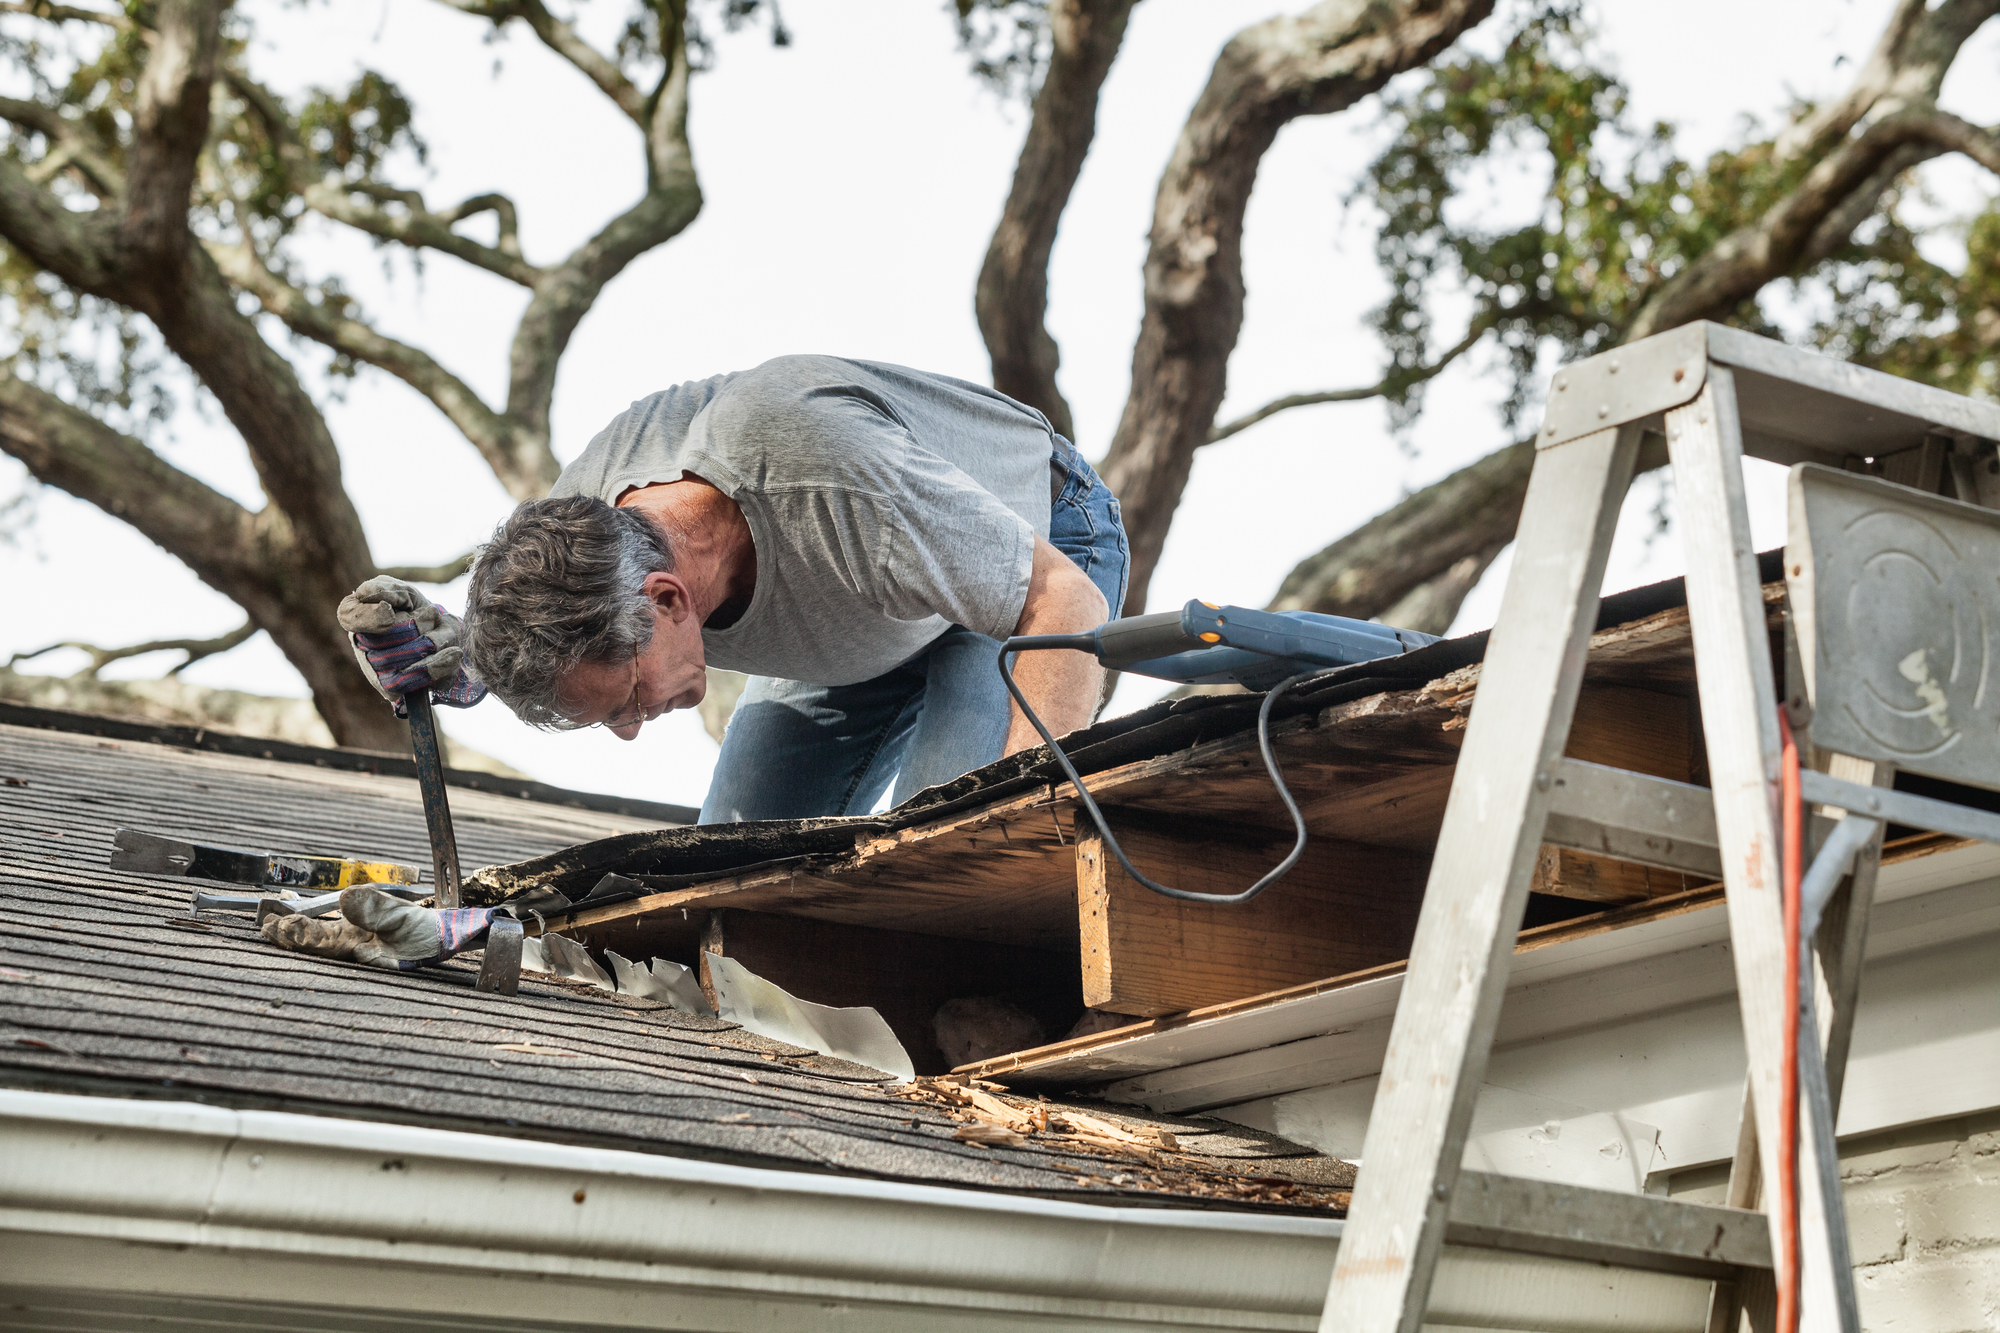 Man using crowbar to remove rotten wood from leaky roof. After removing fascia boards he has discovered that the leak has extended into the beams and decking.